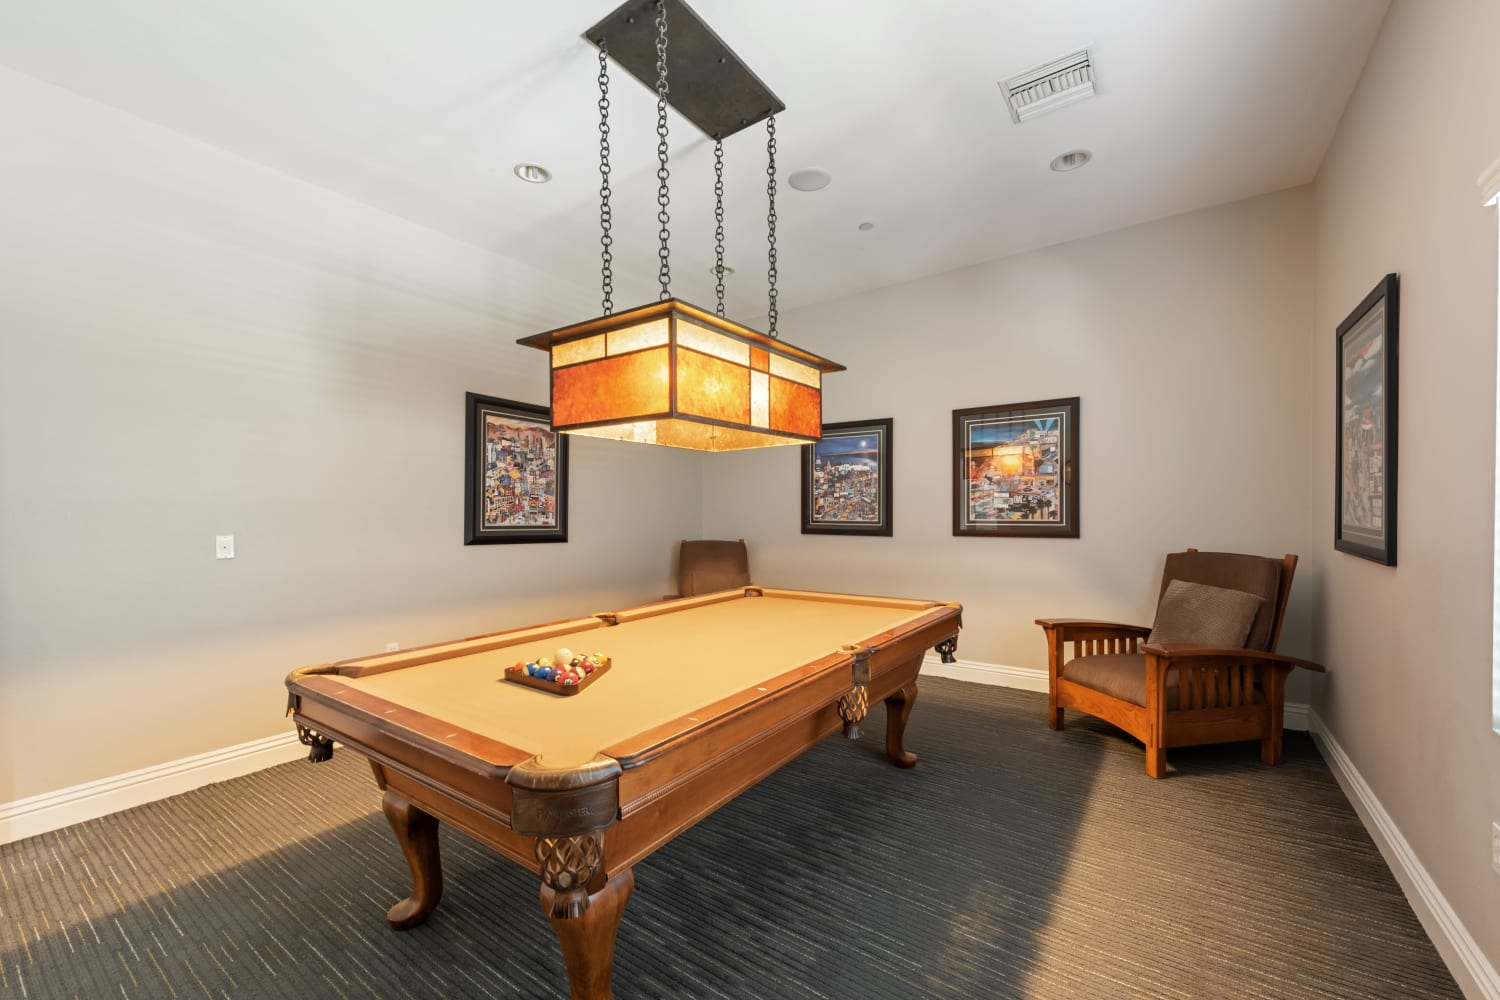 Enjoy Apartments with a billiards area at The Village on 5th